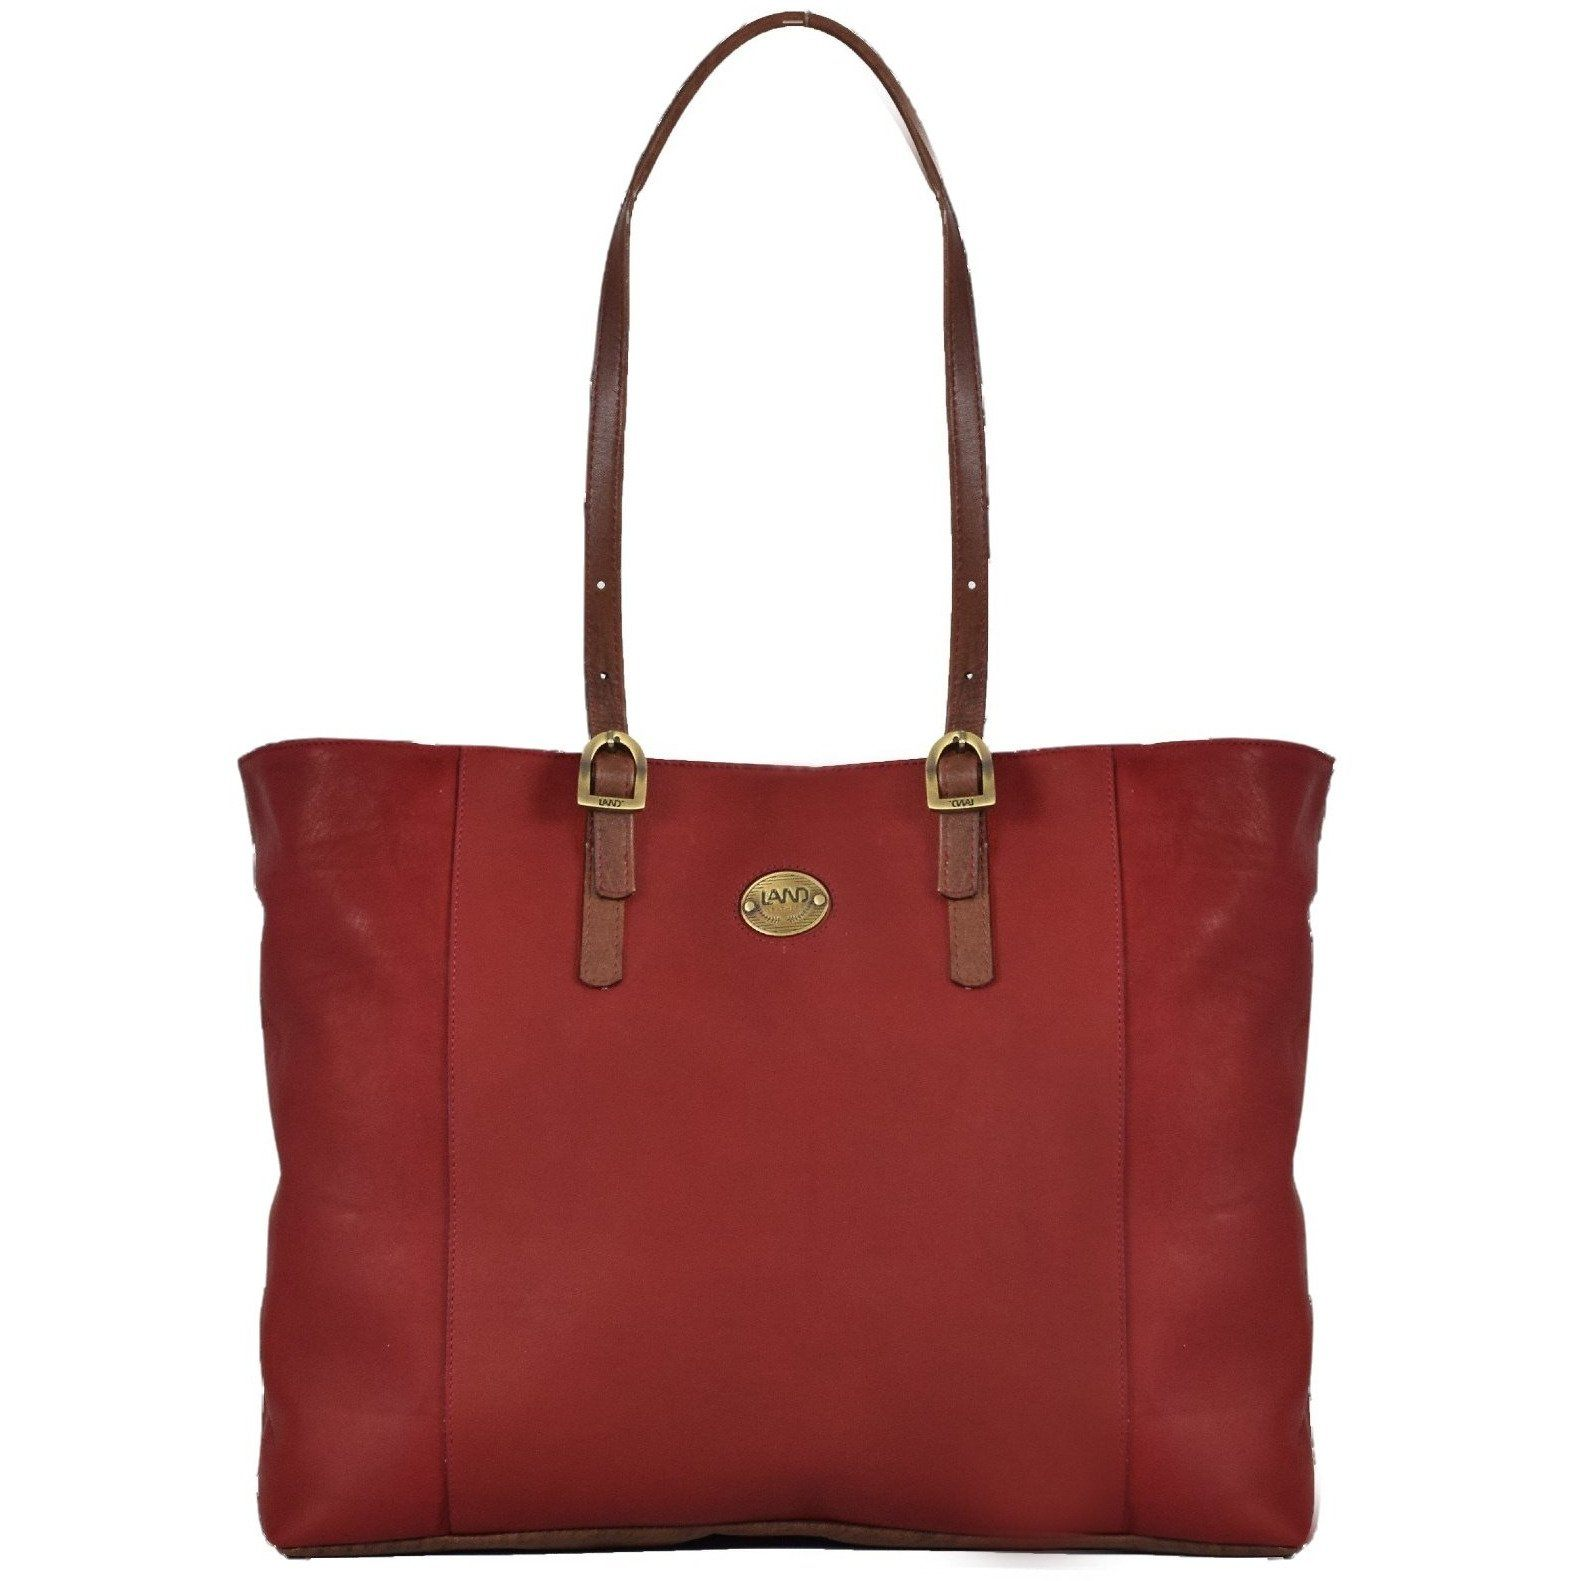 Anniversary Cleopatra Shopper, Handbag | LAND Leather